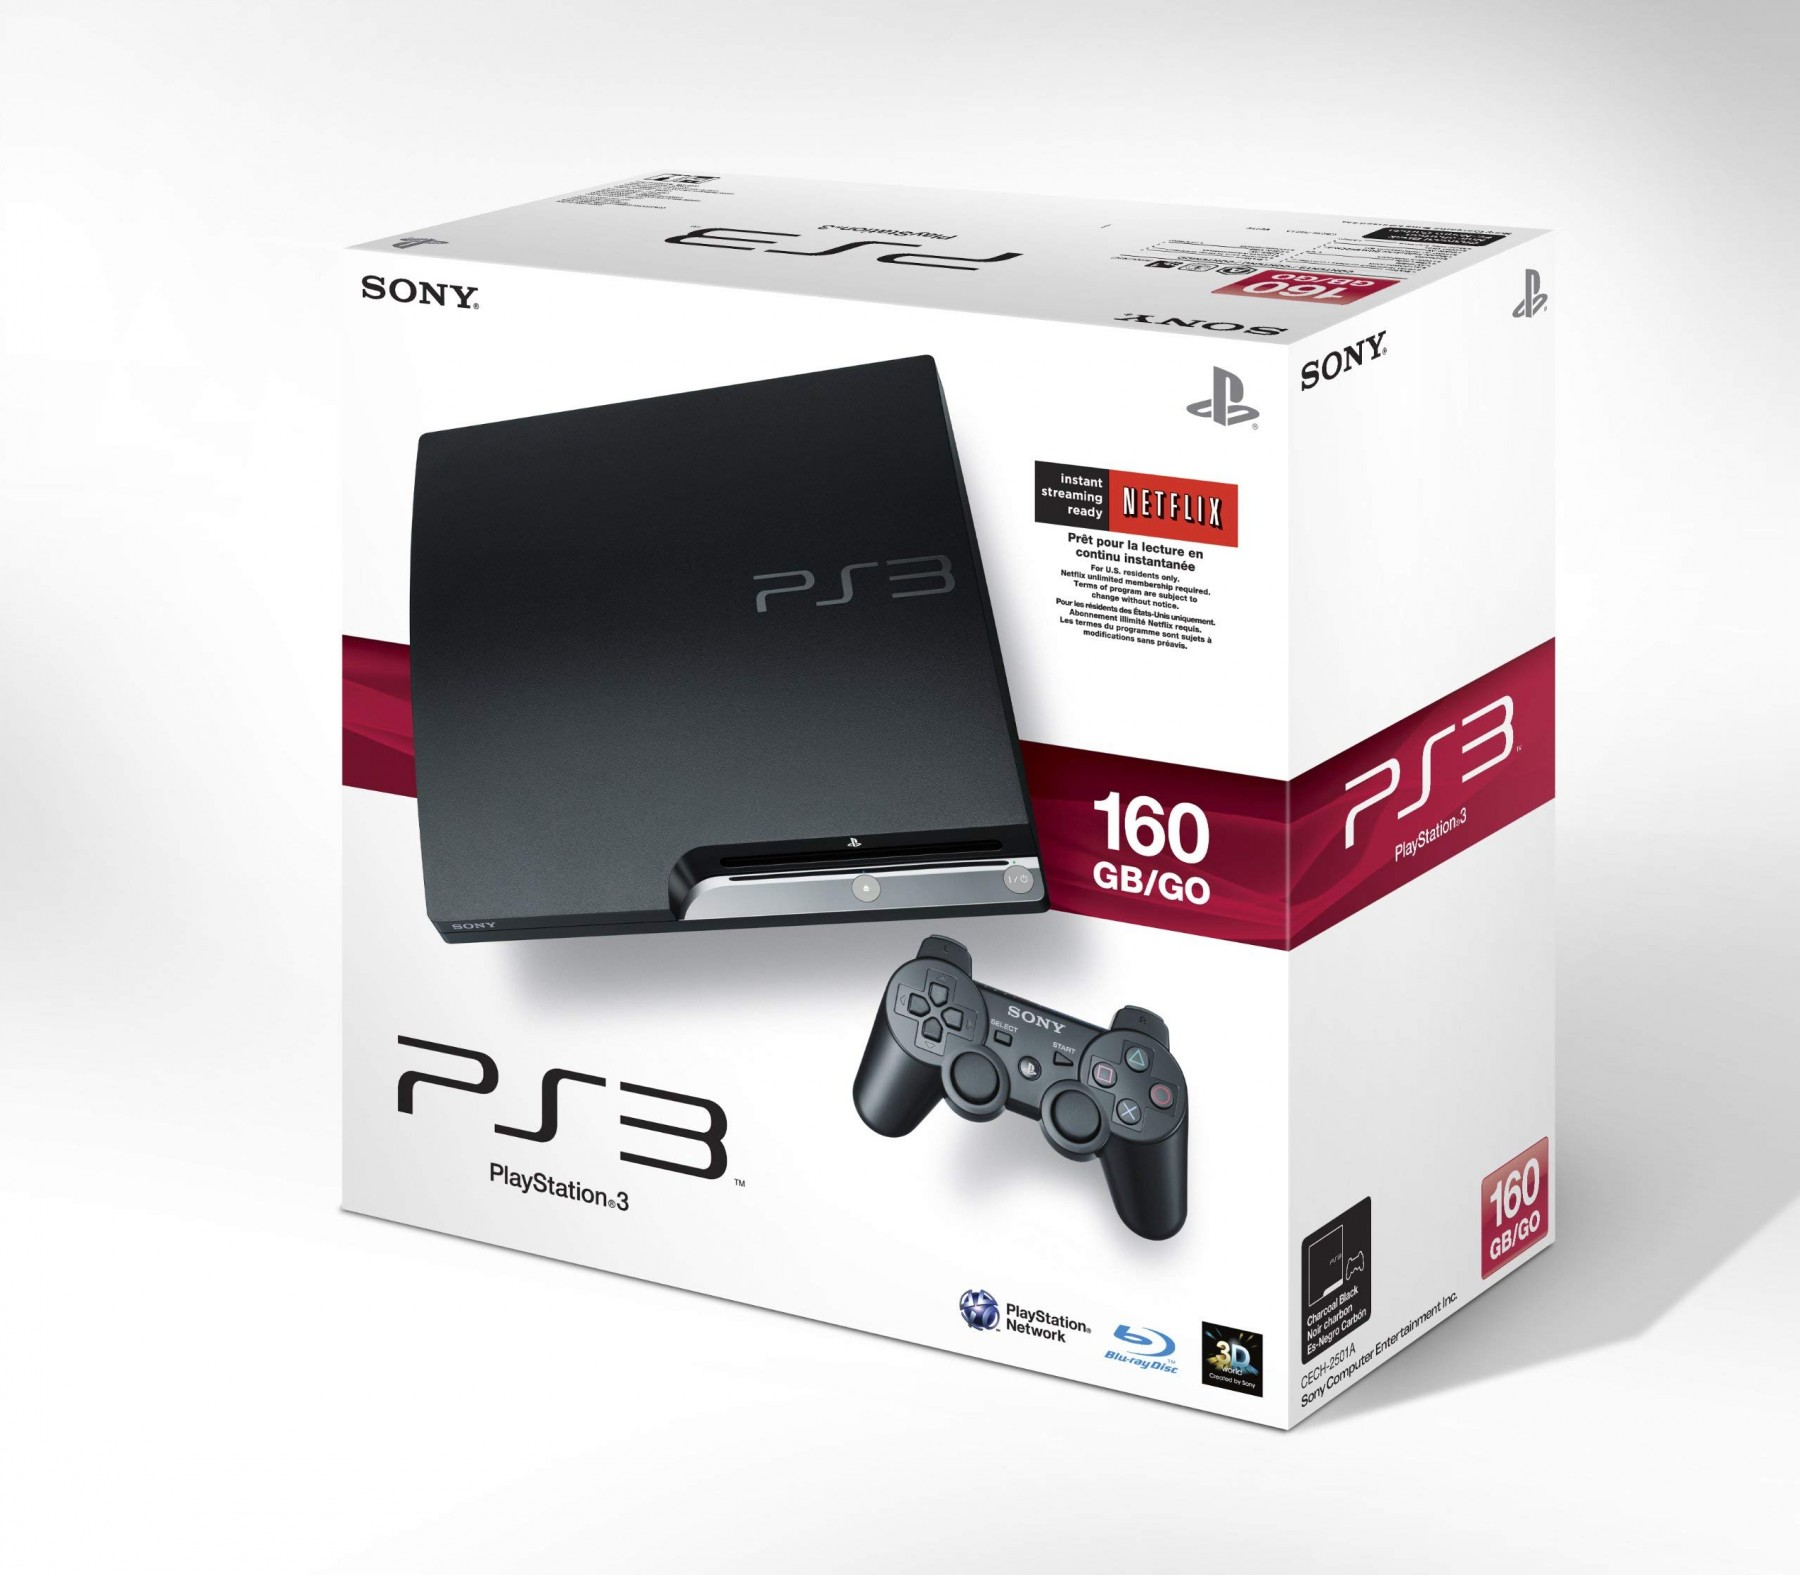 Sony PlayStation 3 Slim 160GB | PS3 Slim 160GB б/в